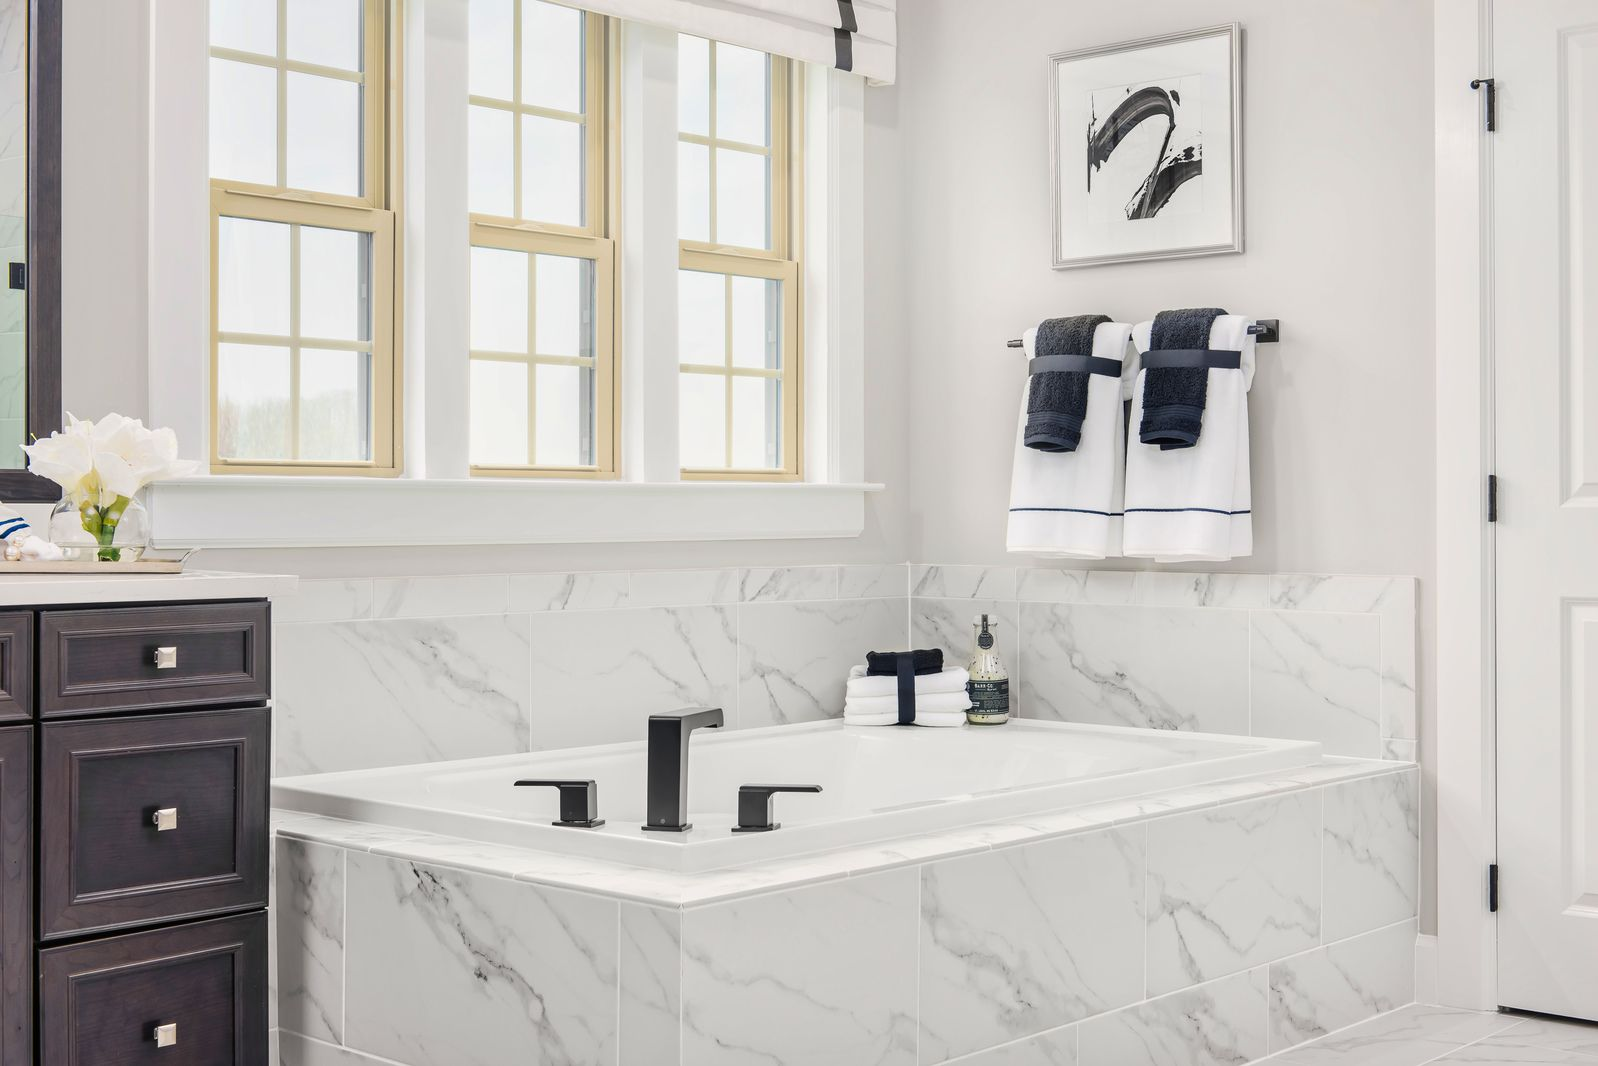 Bathroom featured in the Stratford Hall By NVHomes in Sussex, DE